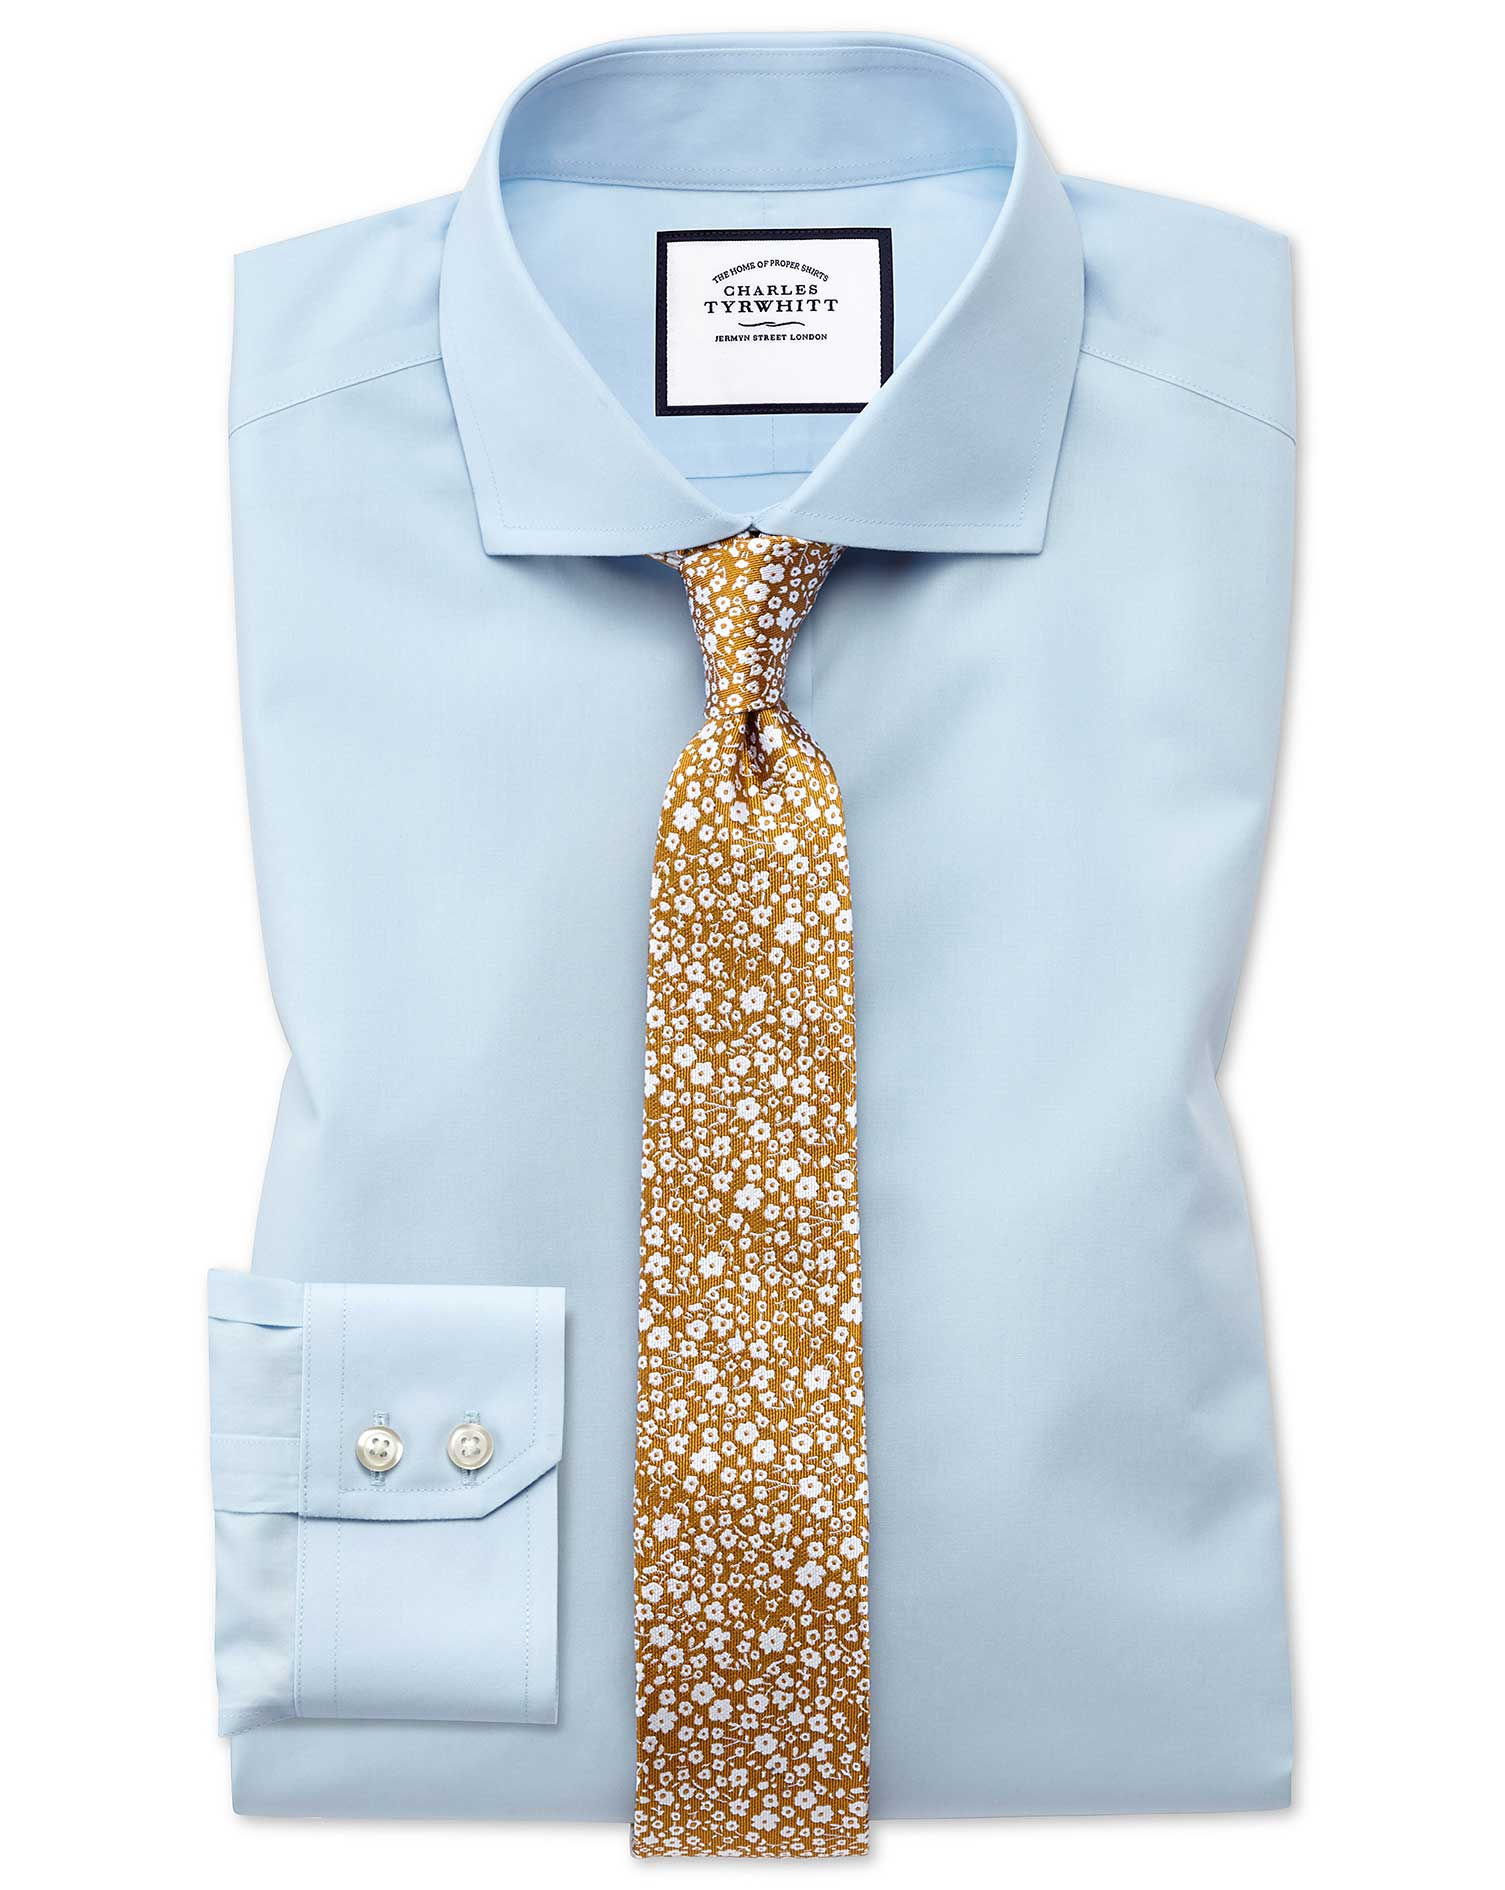 Classic Fit Cutaway Non-Iron Natural Cool Sky Blue Cotton Formal Shirt Single Cuff Size 15.5/33 by C